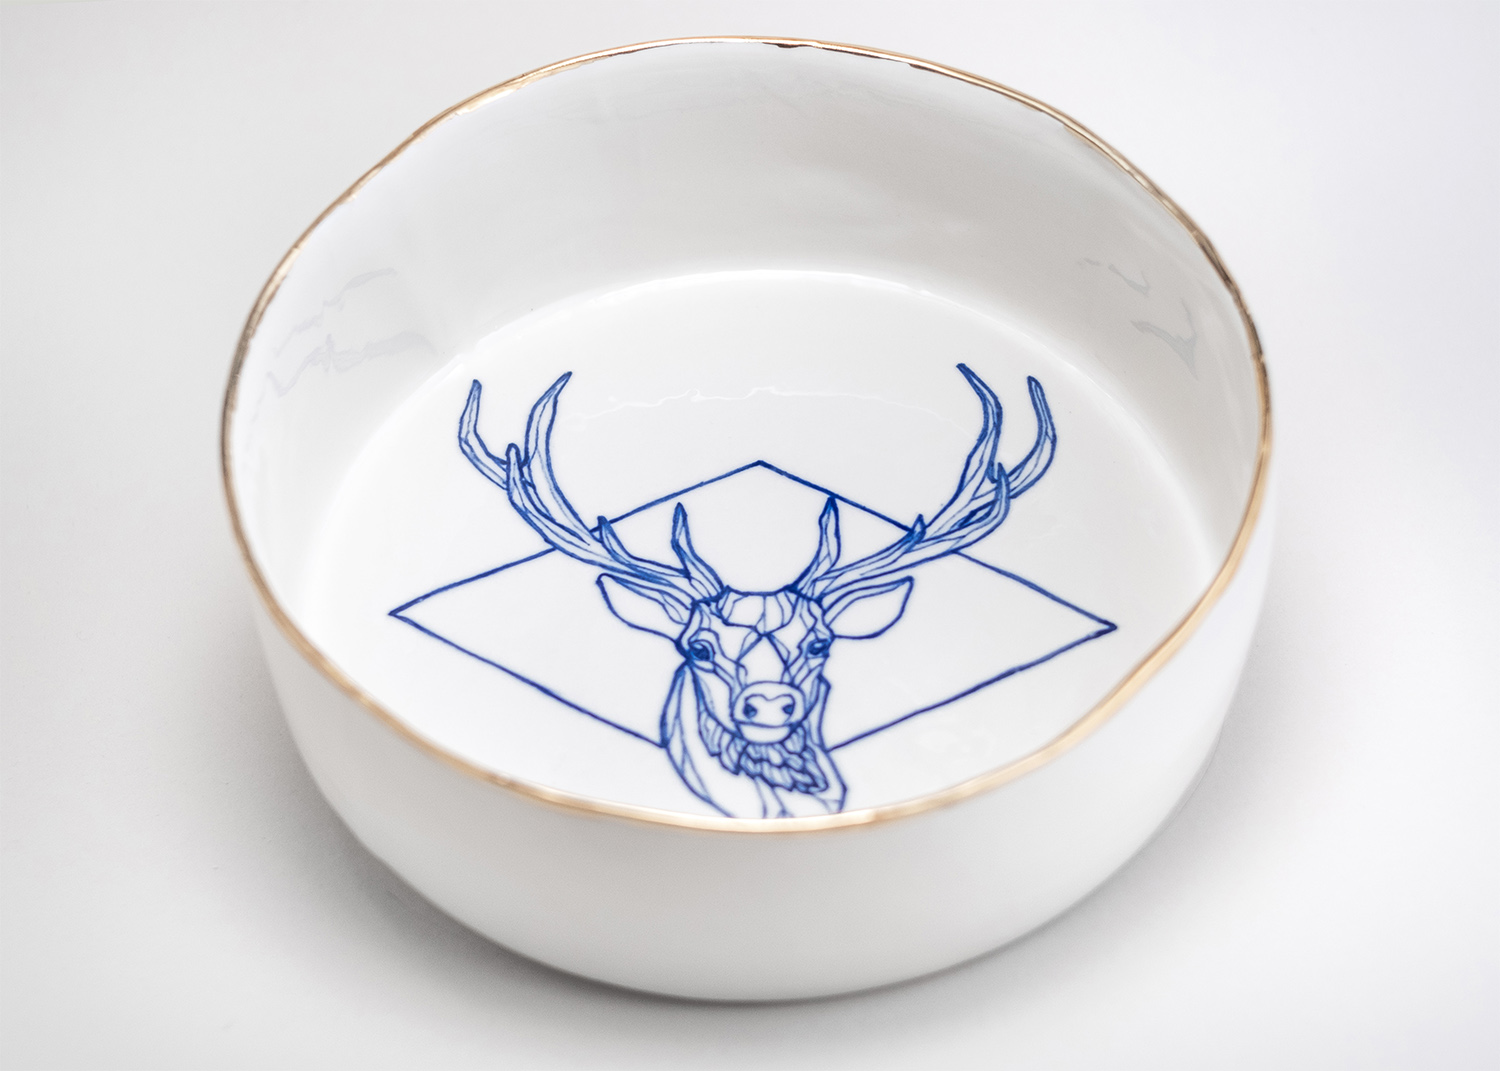 Porcelain painted bowl deer tattoo handmade ceramic berlin antikapratika tattooed porcelain.jpg